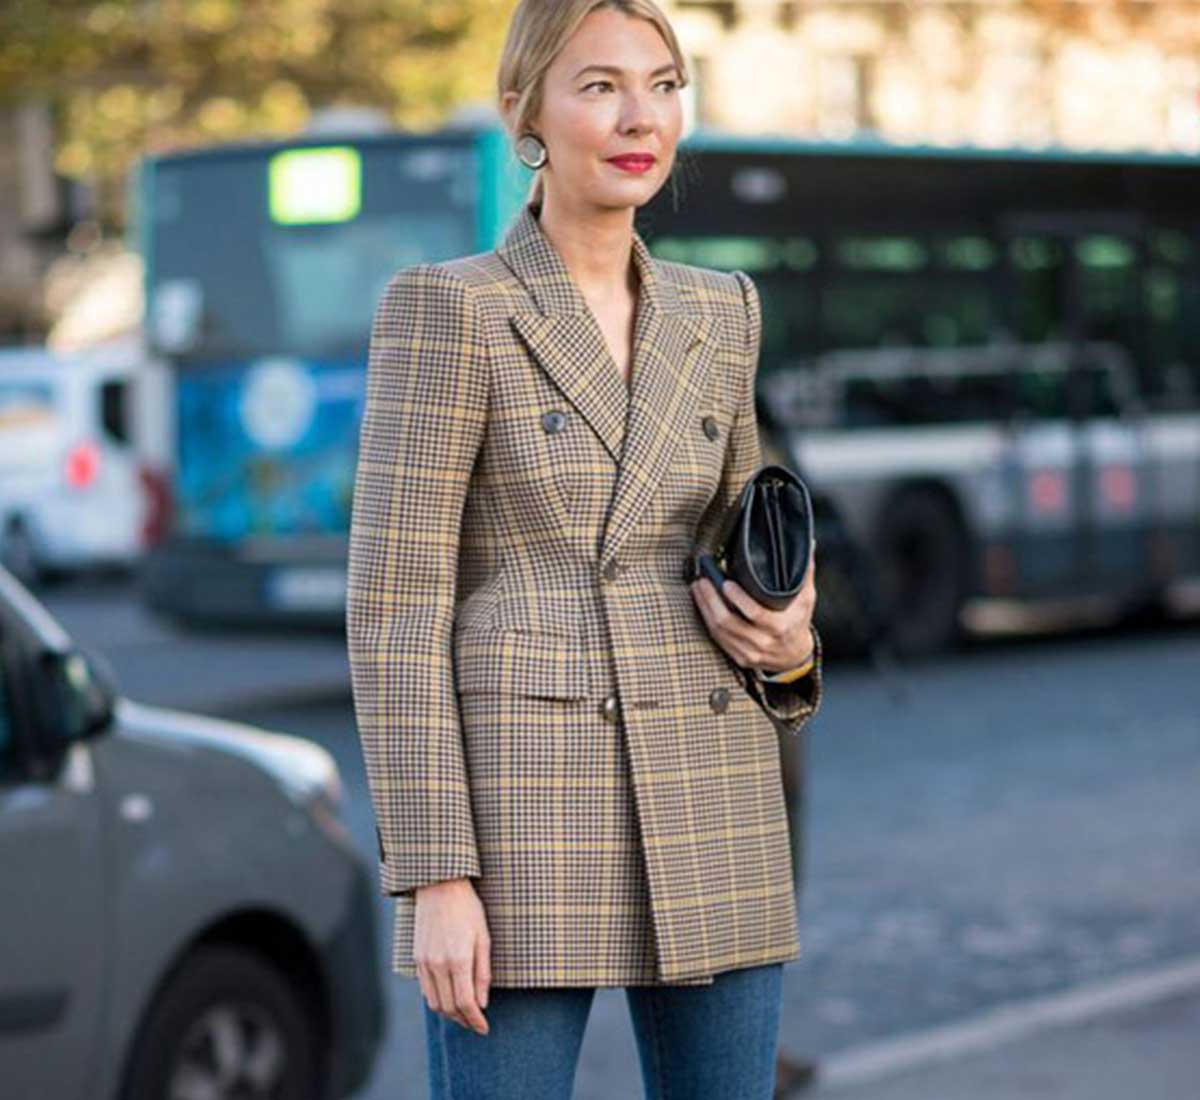 How To Achieve The Parisian Look